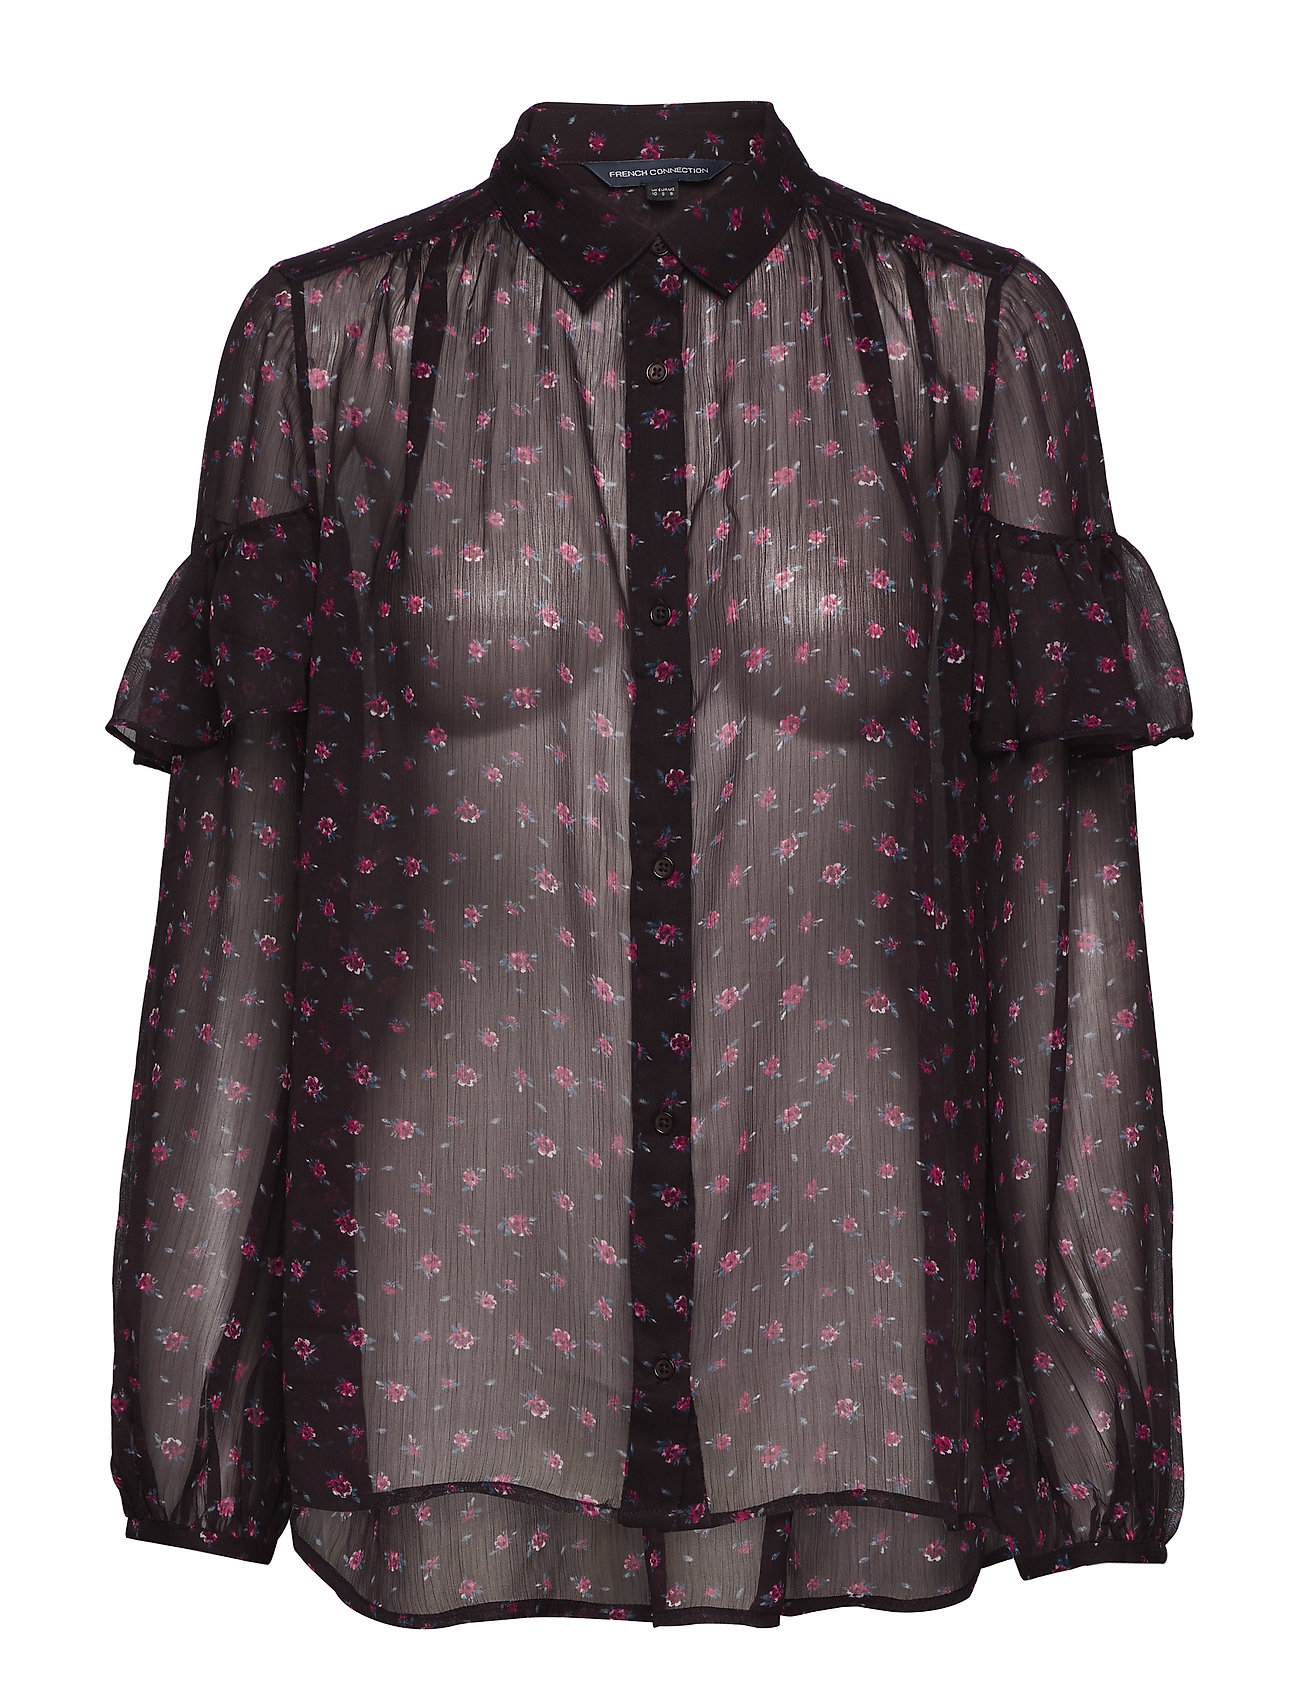 French Connection PF FLORENCE CRINKLE BLOUSE - BLACK GRAPE MULTI